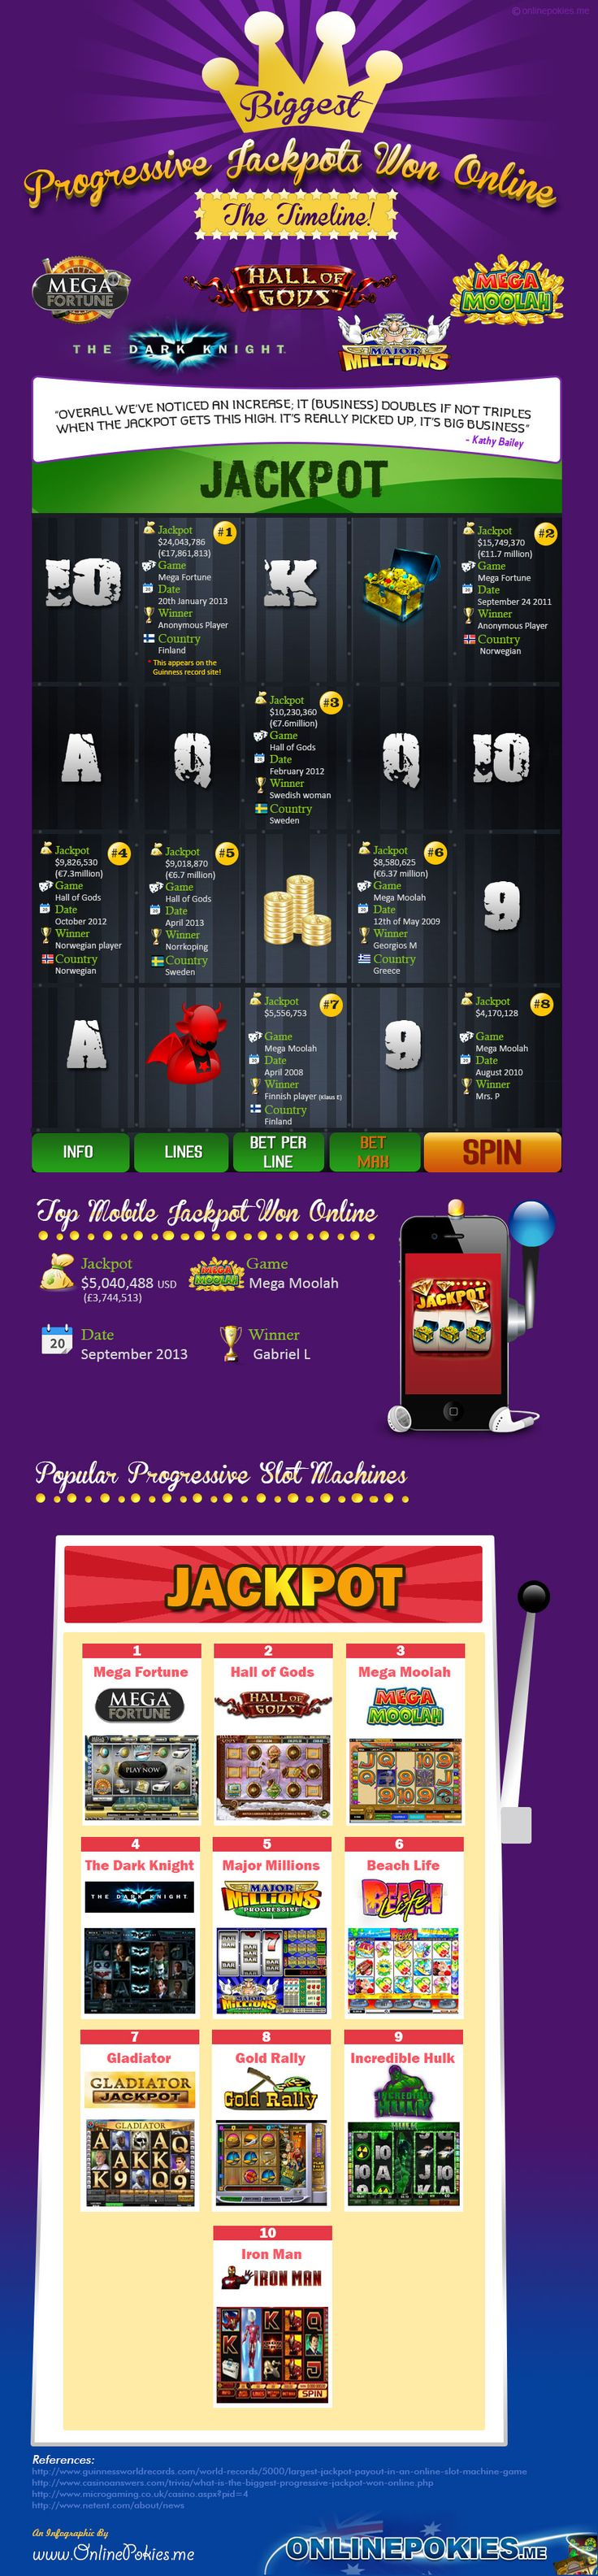 Mind Blowing Progressive Jackpots Won Online – An Infographic - You won't believe how many millions of dollars these people won by gambling online.  Don't look at this if you get jealous easily. Check Progressive Jackpots Won Online - http://www.onlinepokies.me Internet Site,  Website, Web Site